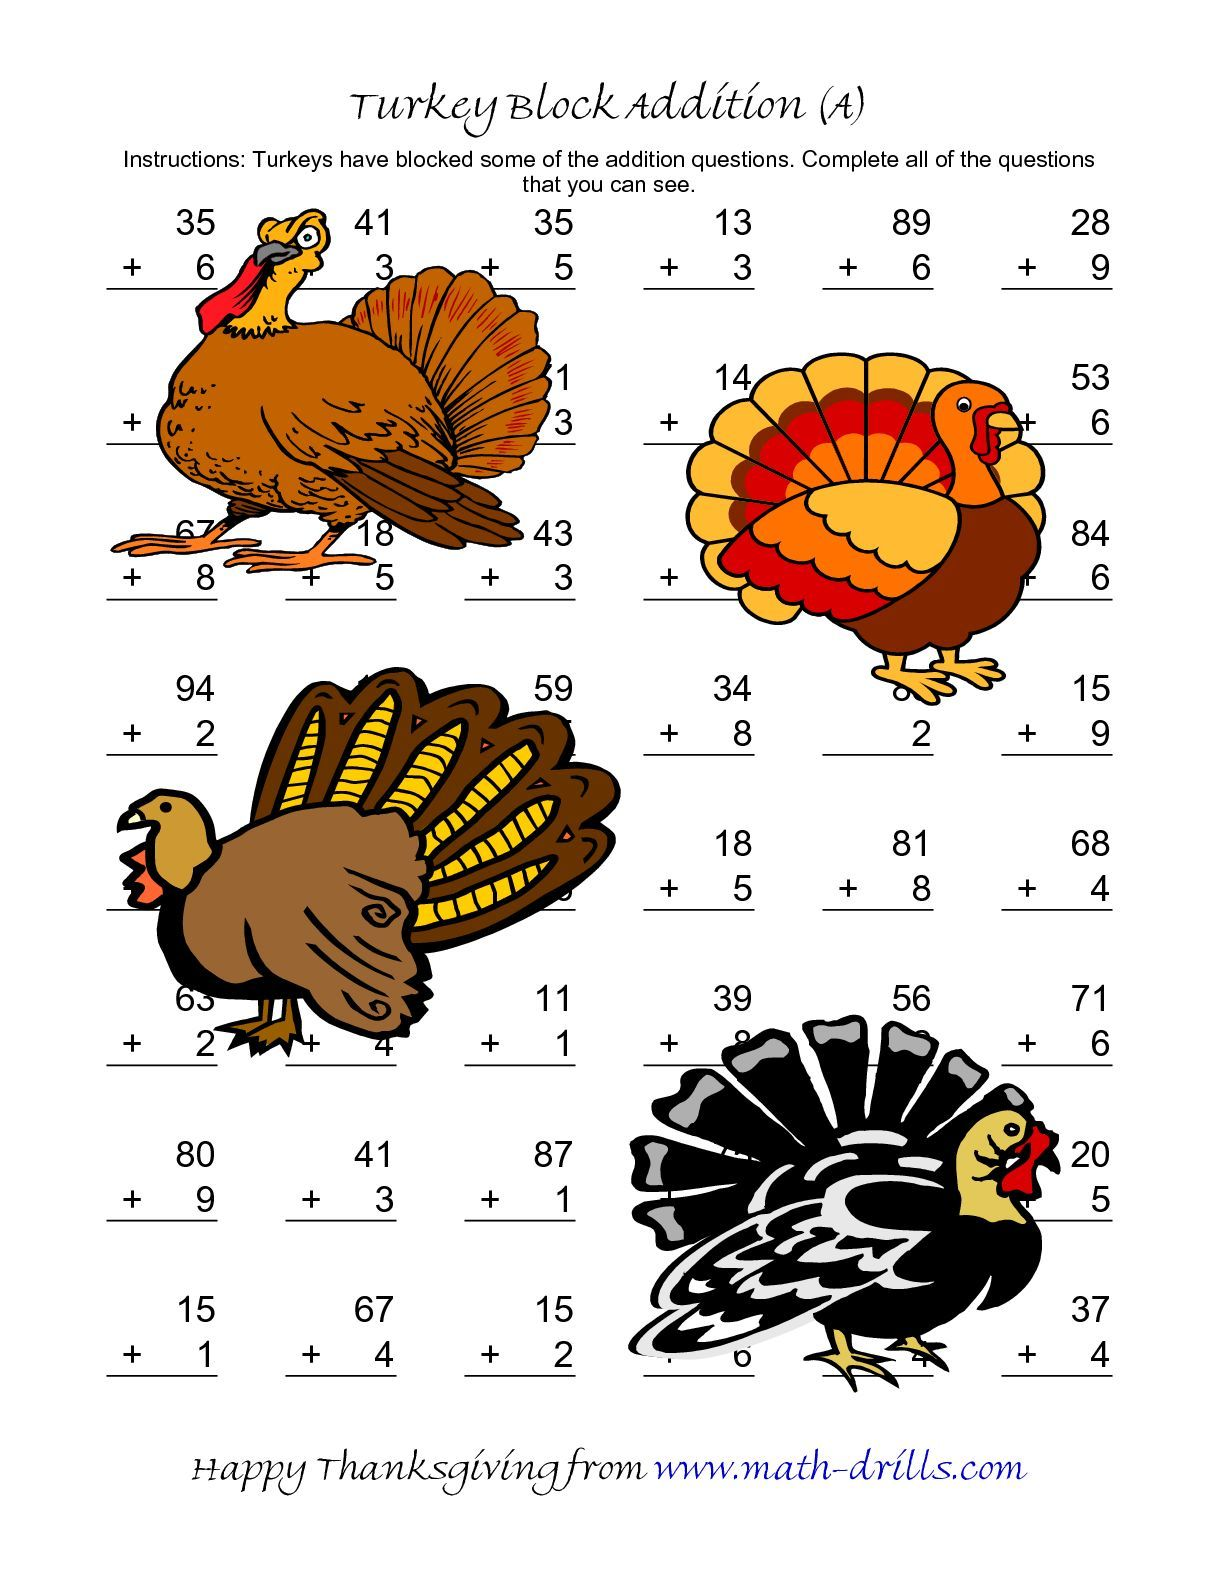 The Turkey Block Addition Two Digit Plus One Digit A